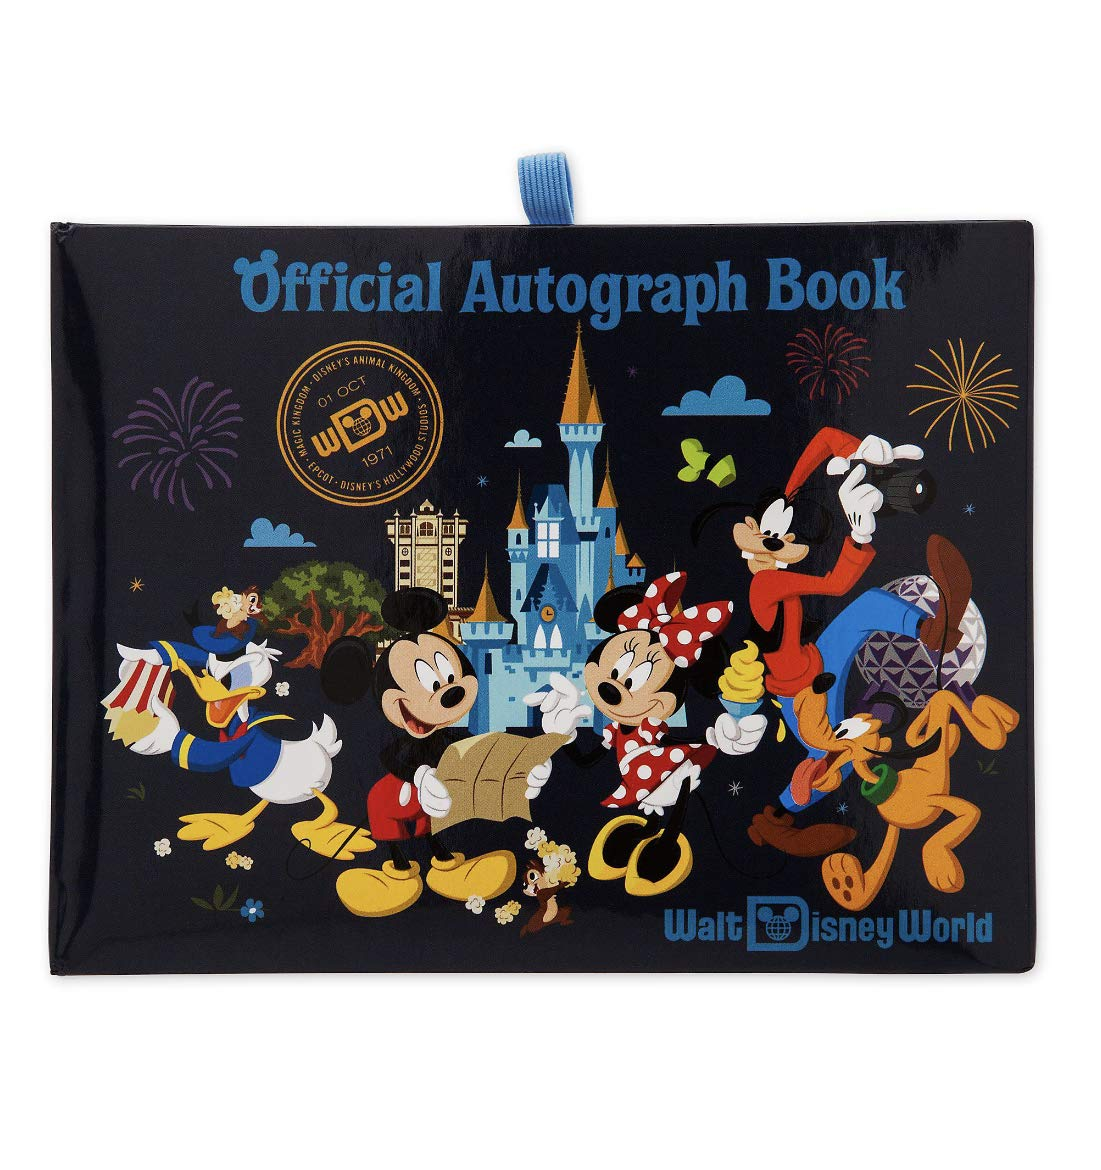 Walt Disney World Official Autograph Book (2019) (Original Version)